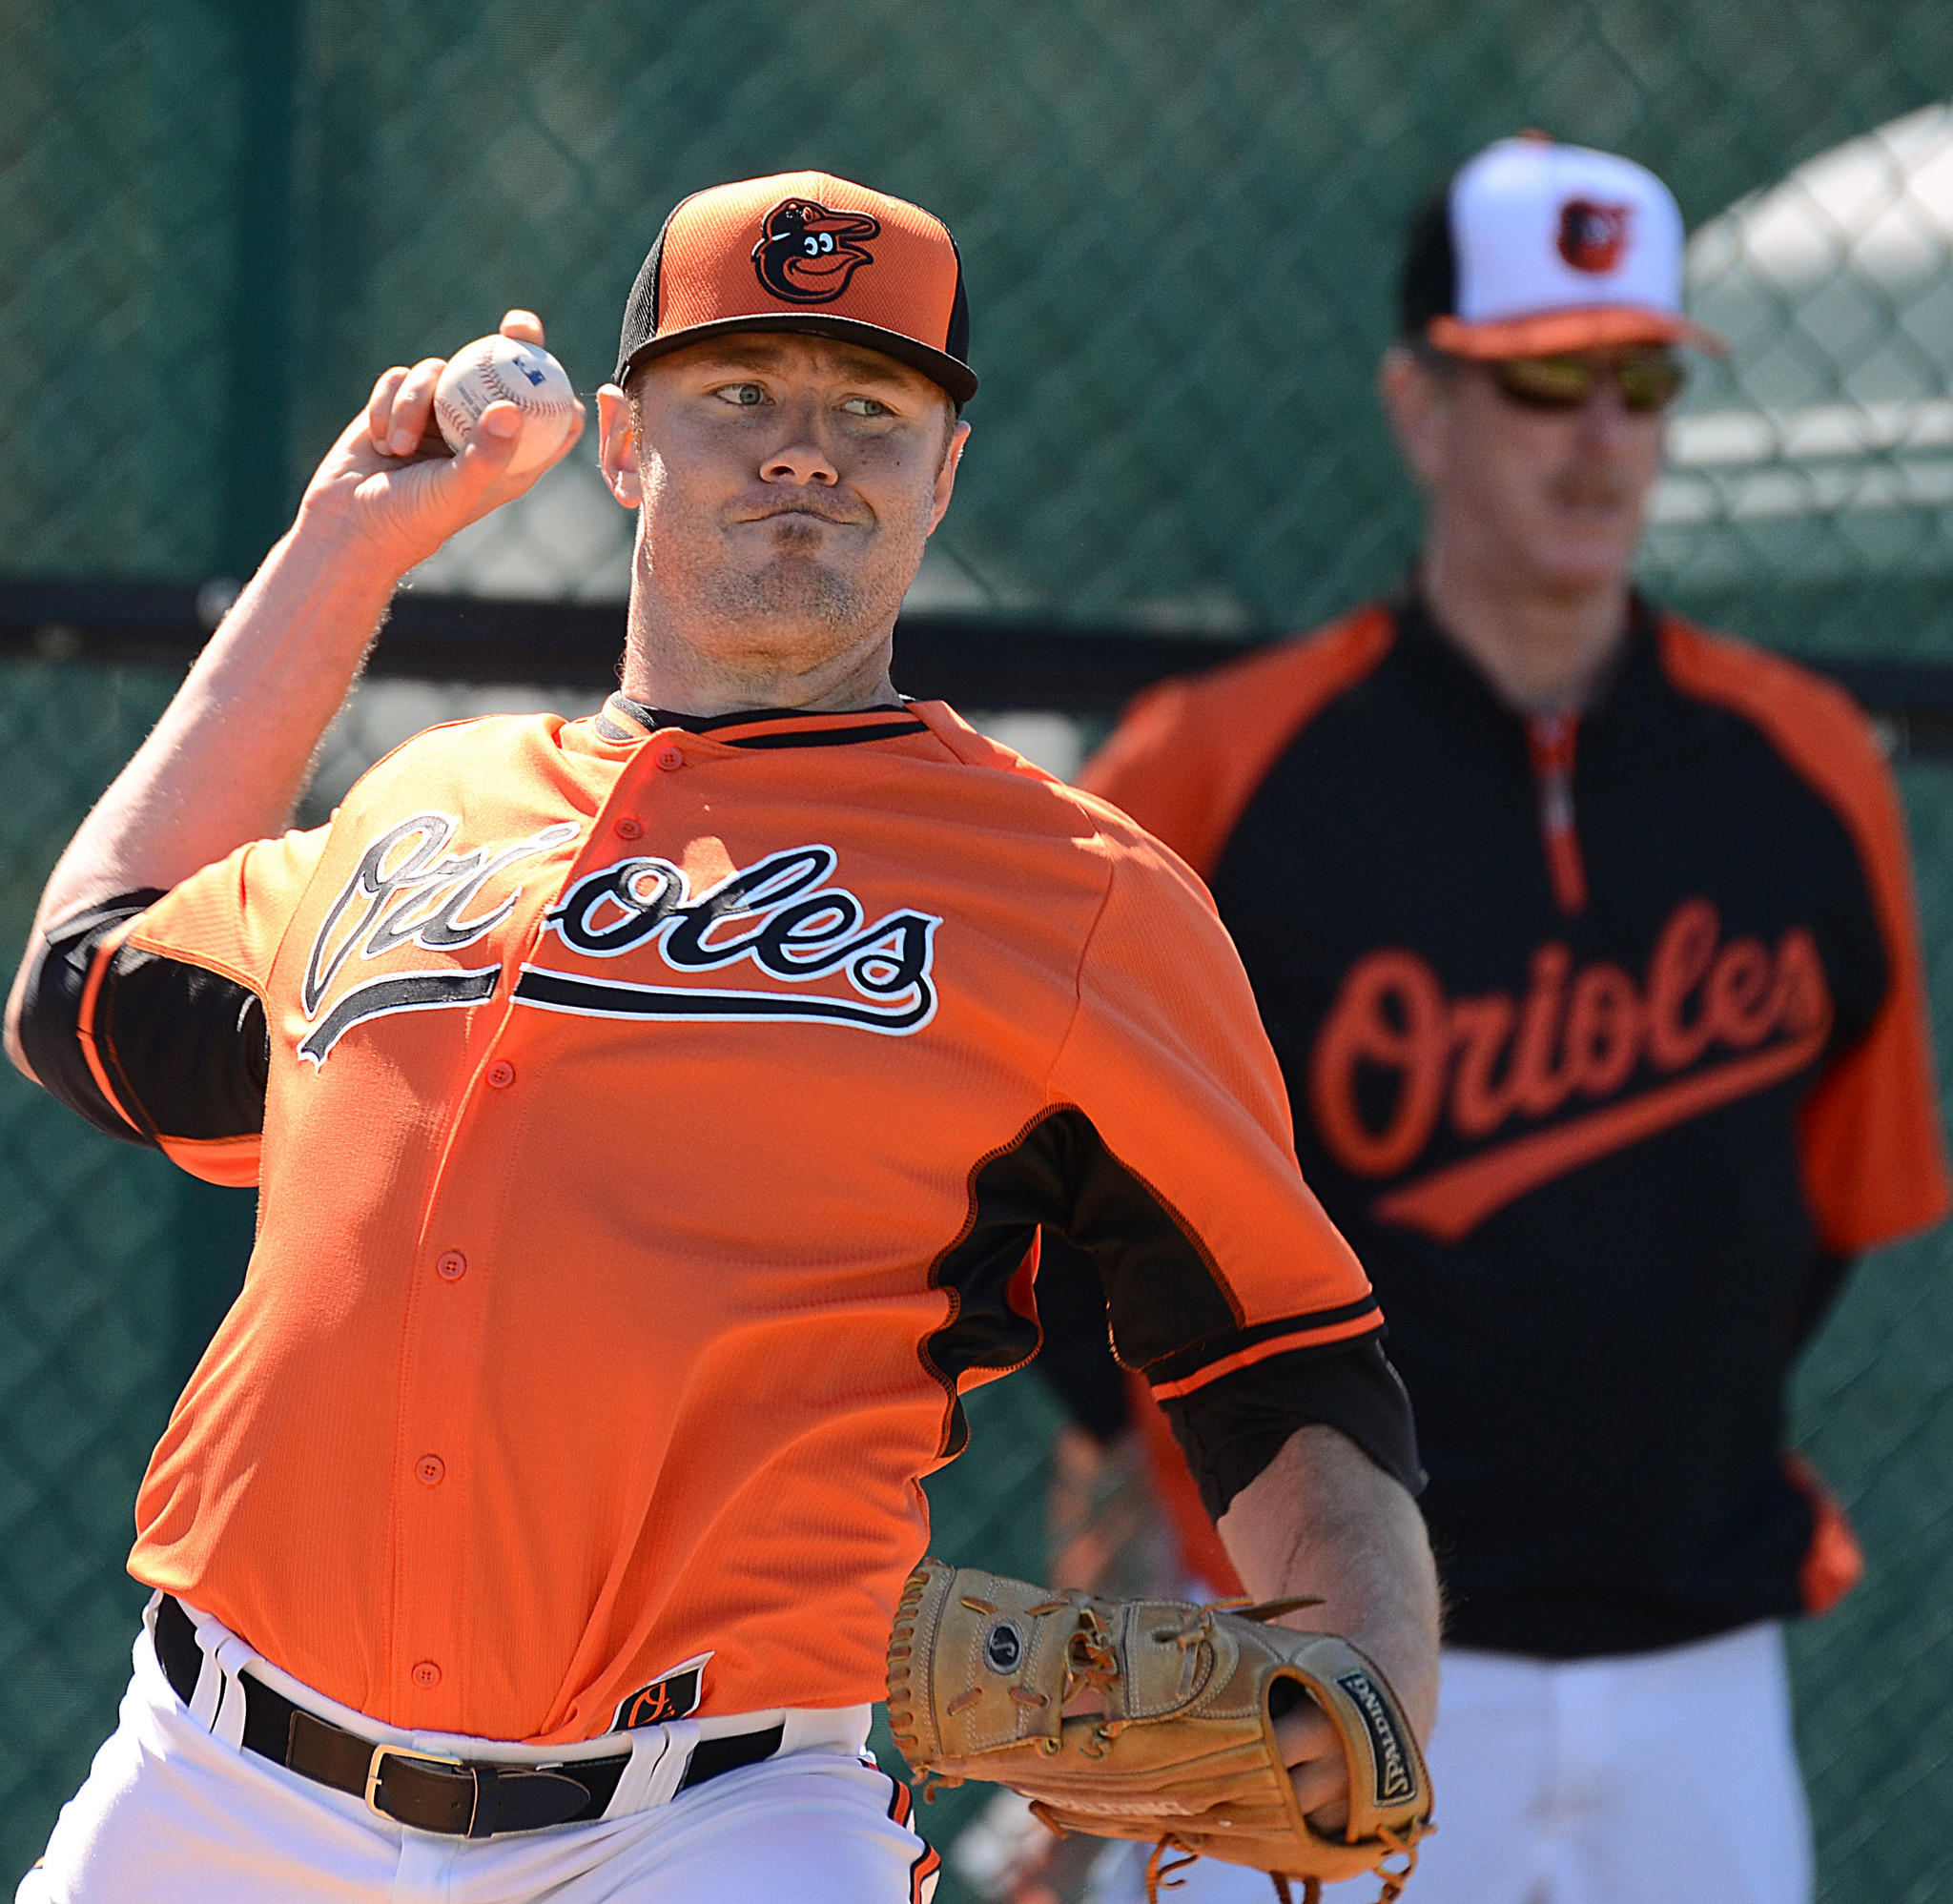 Orioles pitcher Chris Tillman throws a pitch during Friday's workout at Ed Smith Stadium.